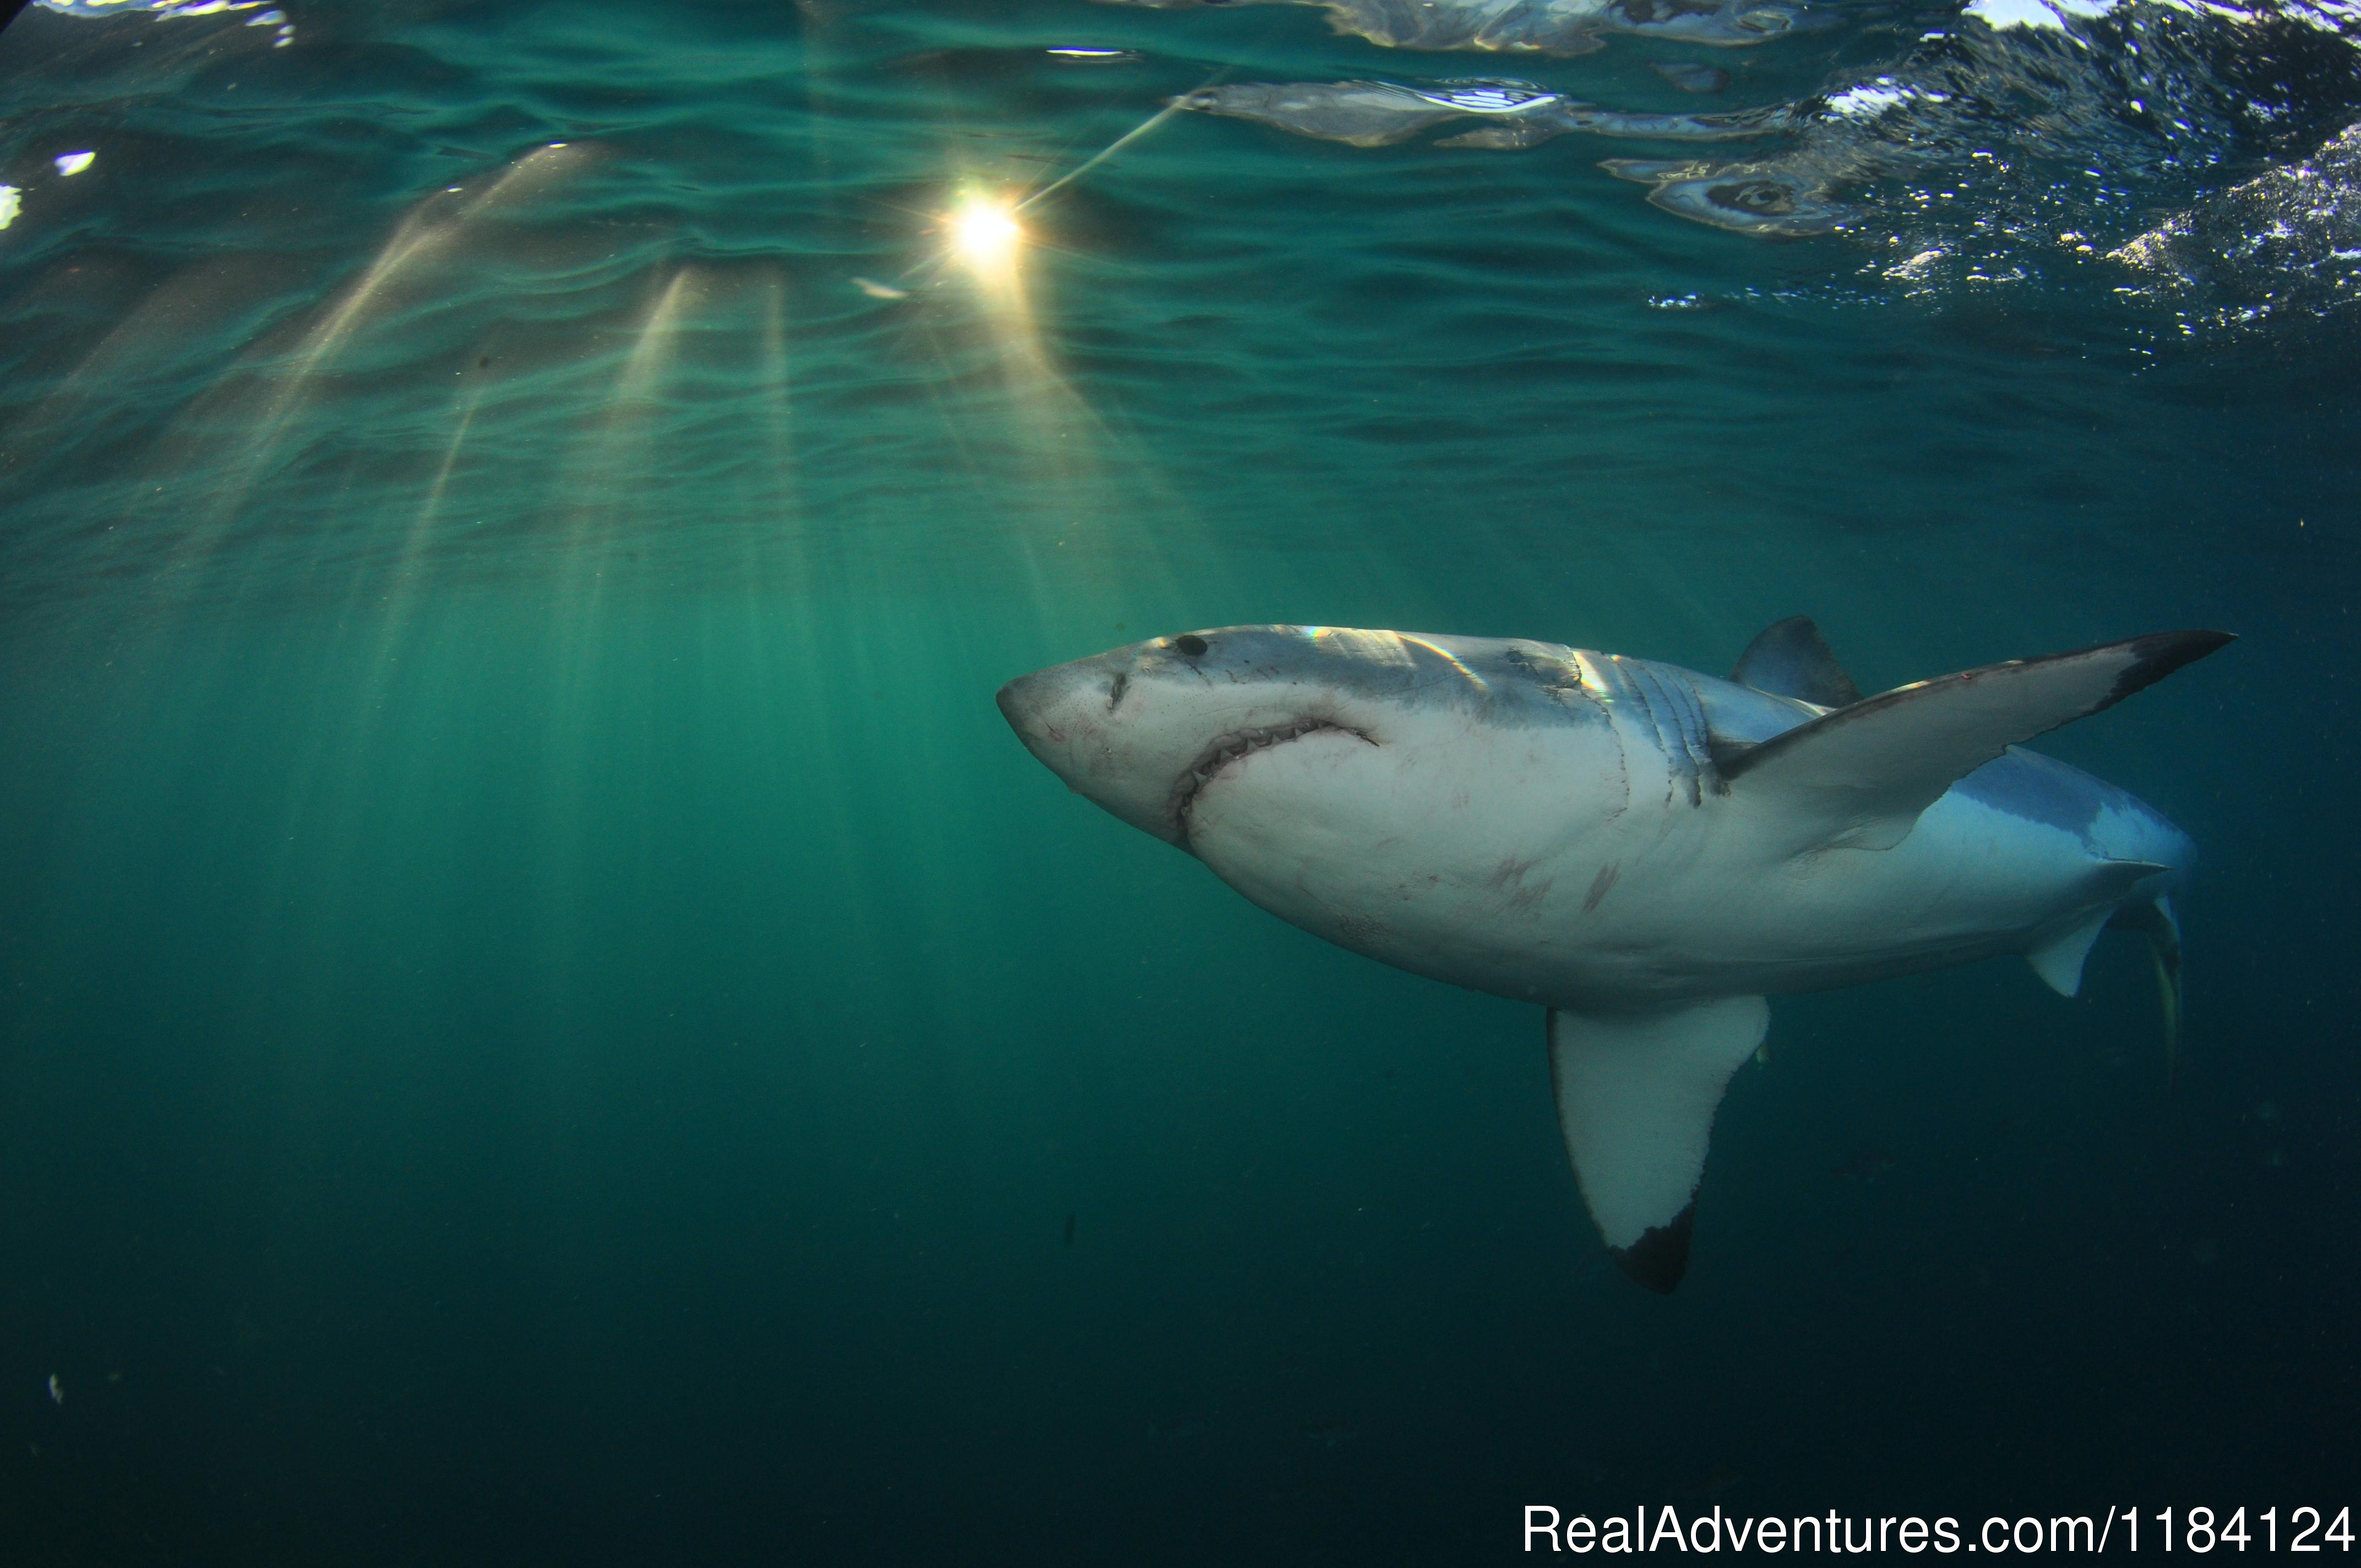 Amazing shot of the Great White Under Water